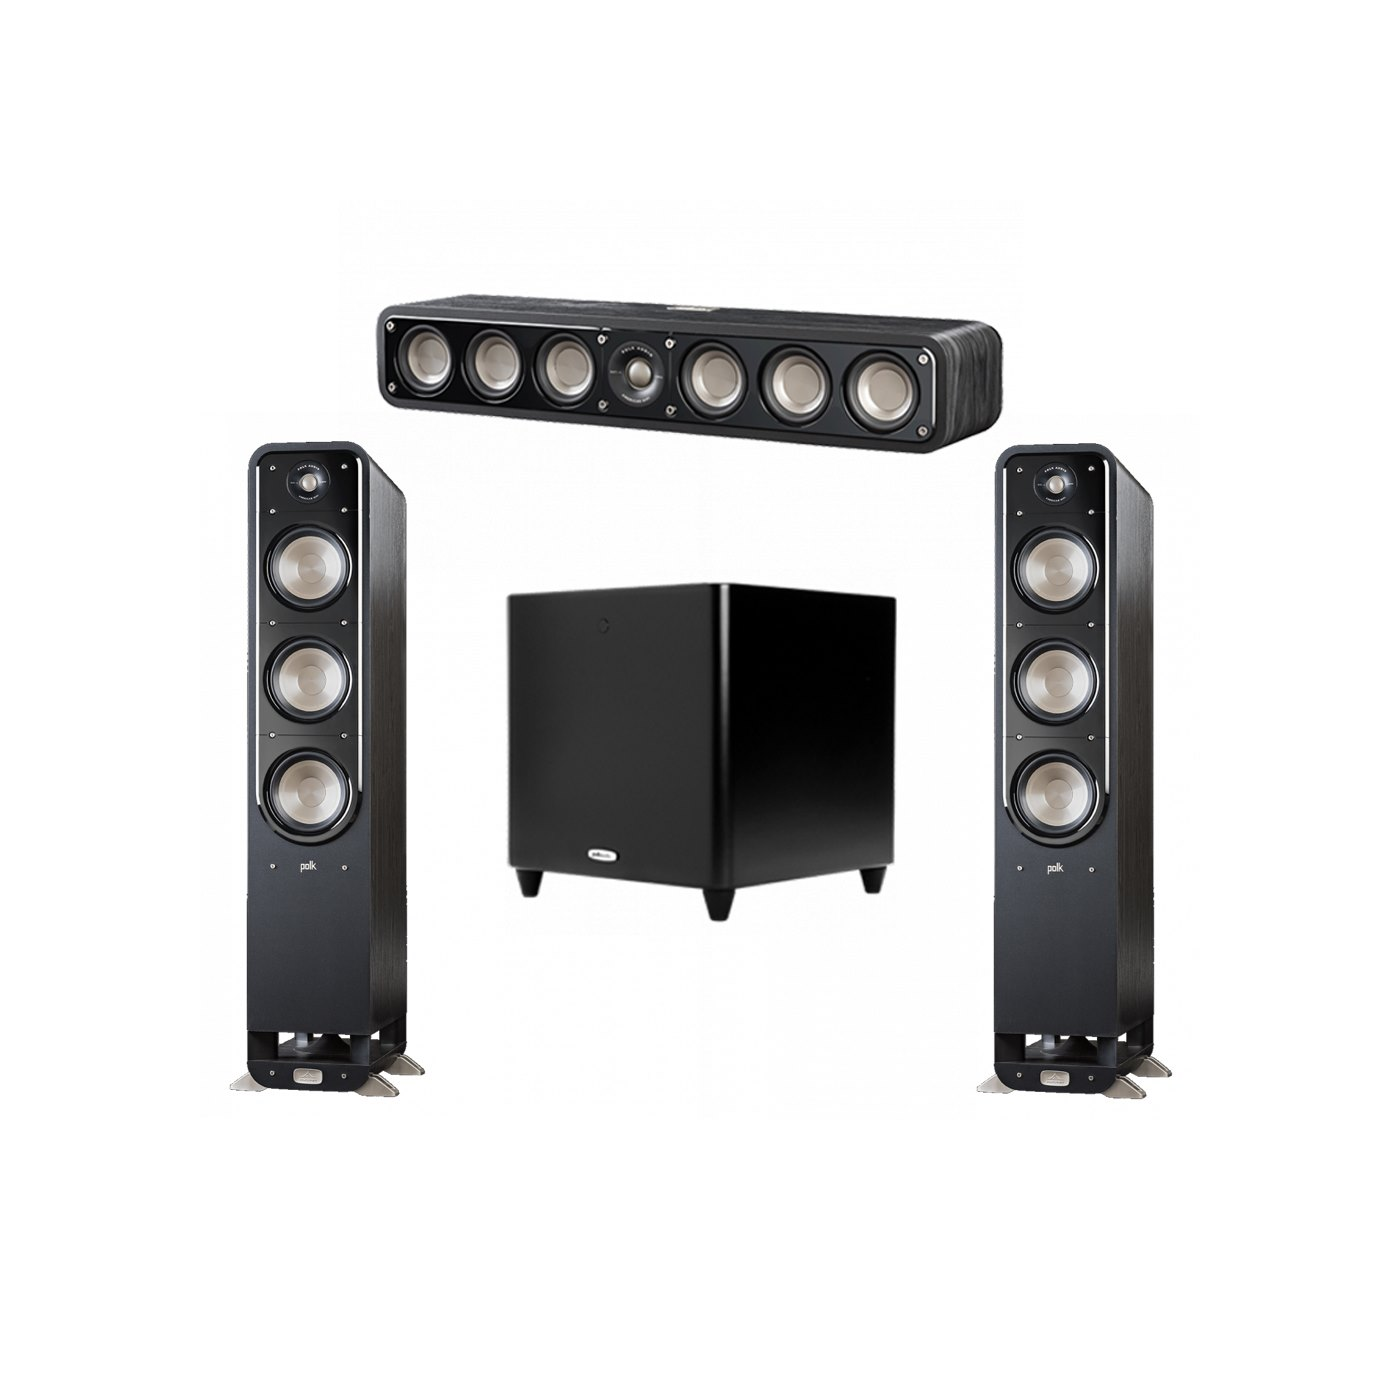 Polk Audio Signature 3.1 System with 2 S60 Tower Speaker, 1 Polk S35 Center Speaker, 1 Polk DSW PRO 660 wi Subwoofer